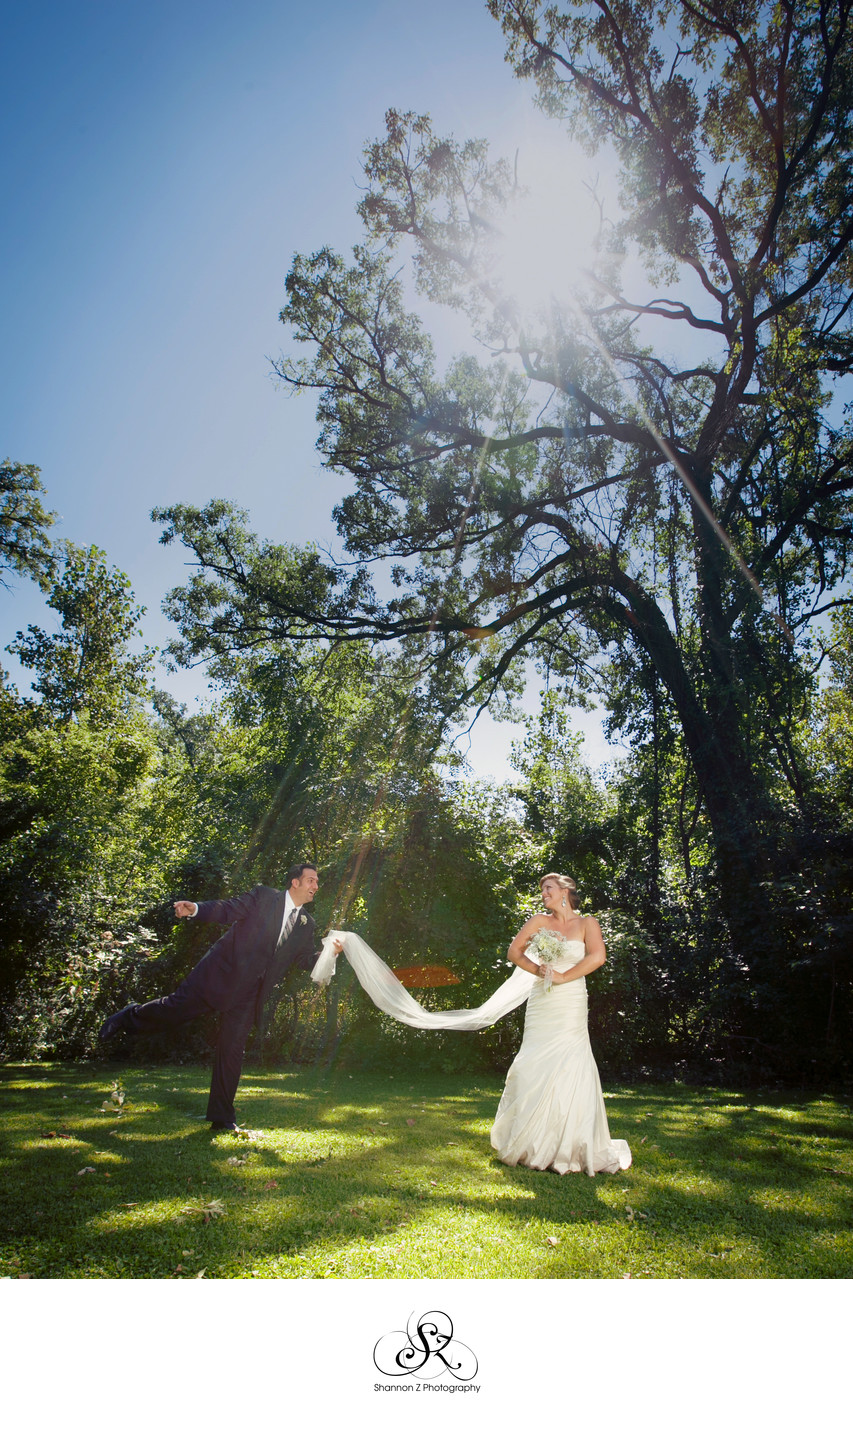 Silly Wedding Photos: The Grove at Redfield Estates